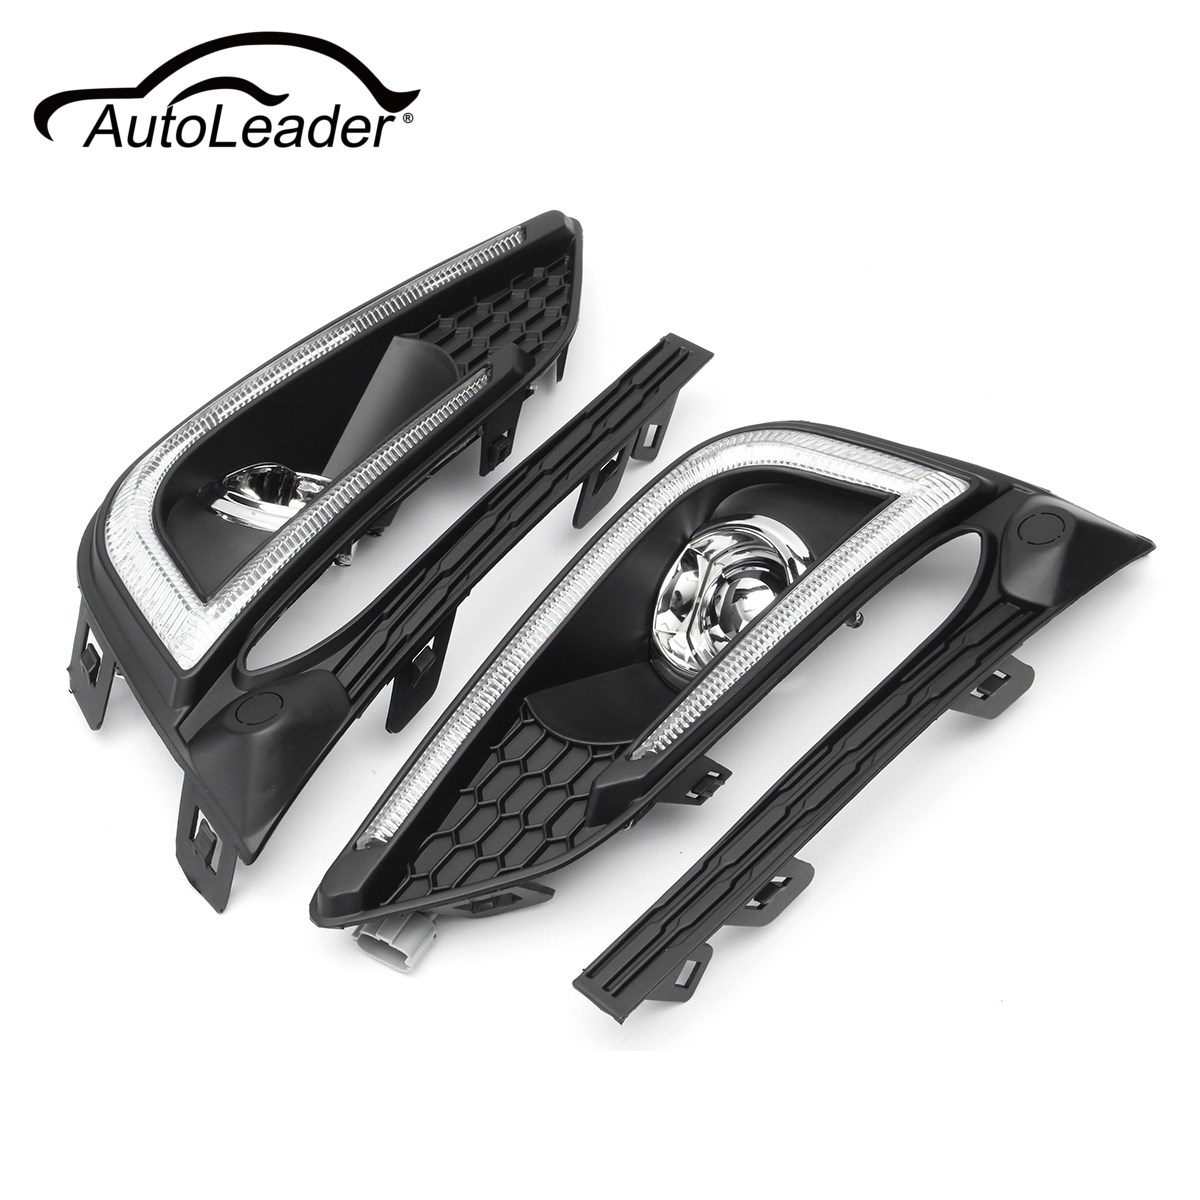 AutoLeader Car LED DRL Daytime Running Lights w/ Fog Driving Lamp Cover For Chevrolet/Cruze 2016-2017 ABS 12V недорого